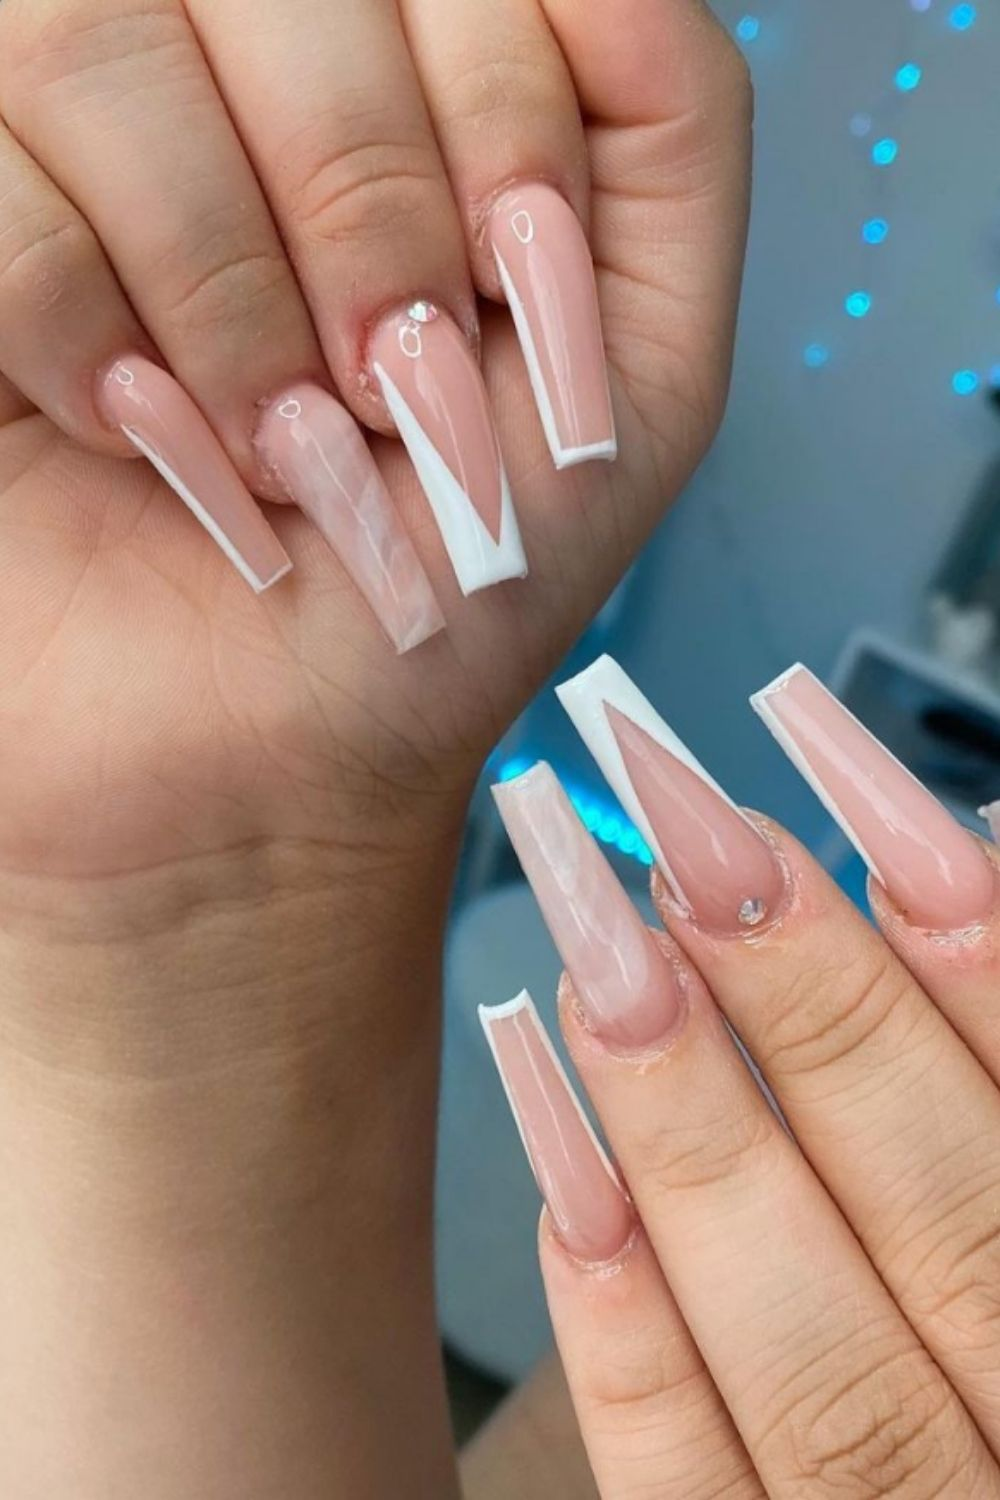 Best gel nails for graduation nails ideas in your summer prom